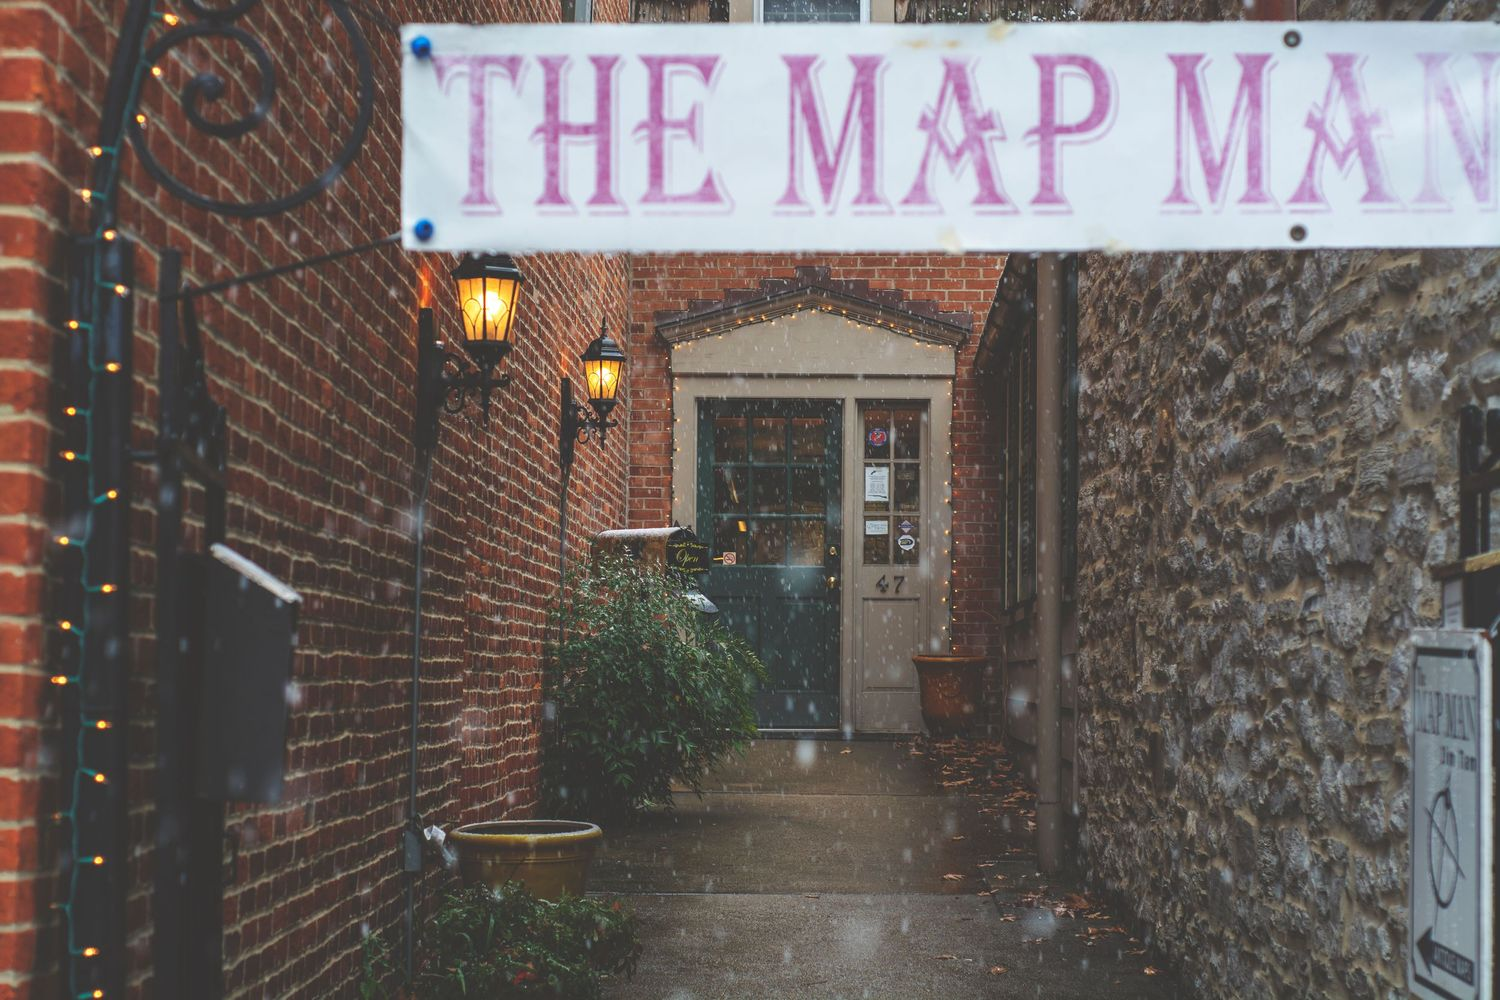 A small alley that leads to a shop called The Map Man.